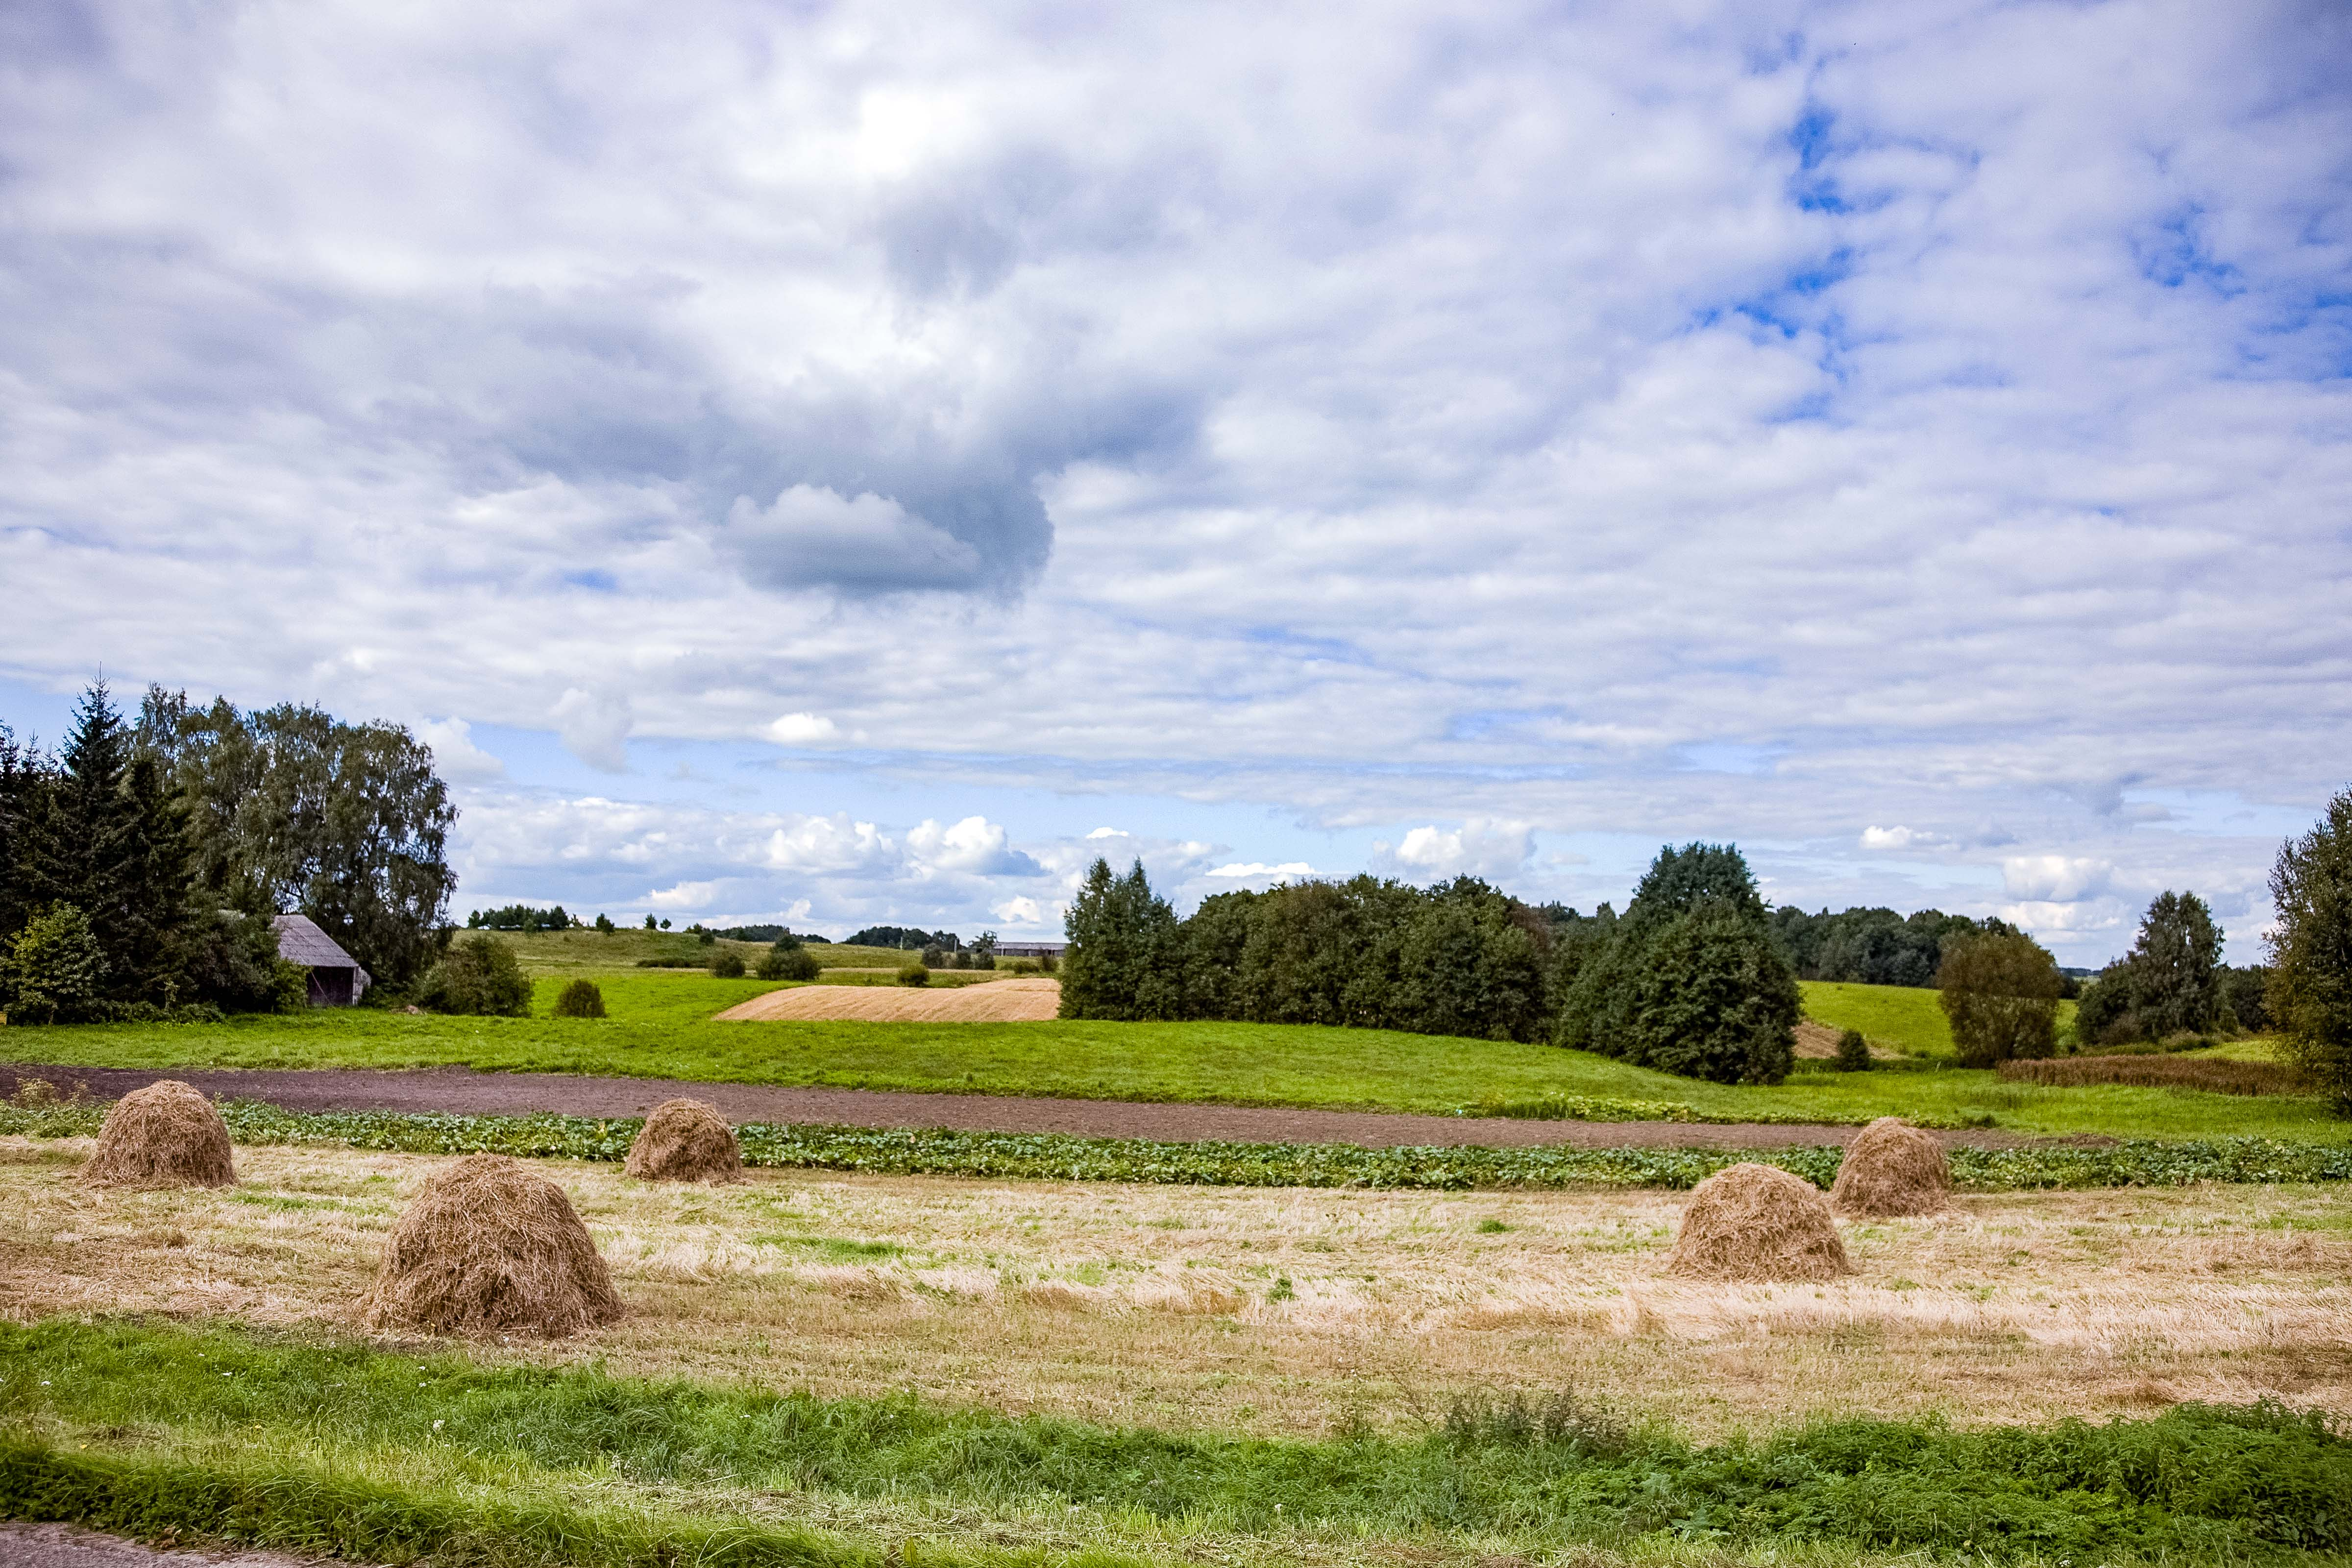 Lithuania, Taurages Prov, Landscape, 2010, IMG_2916